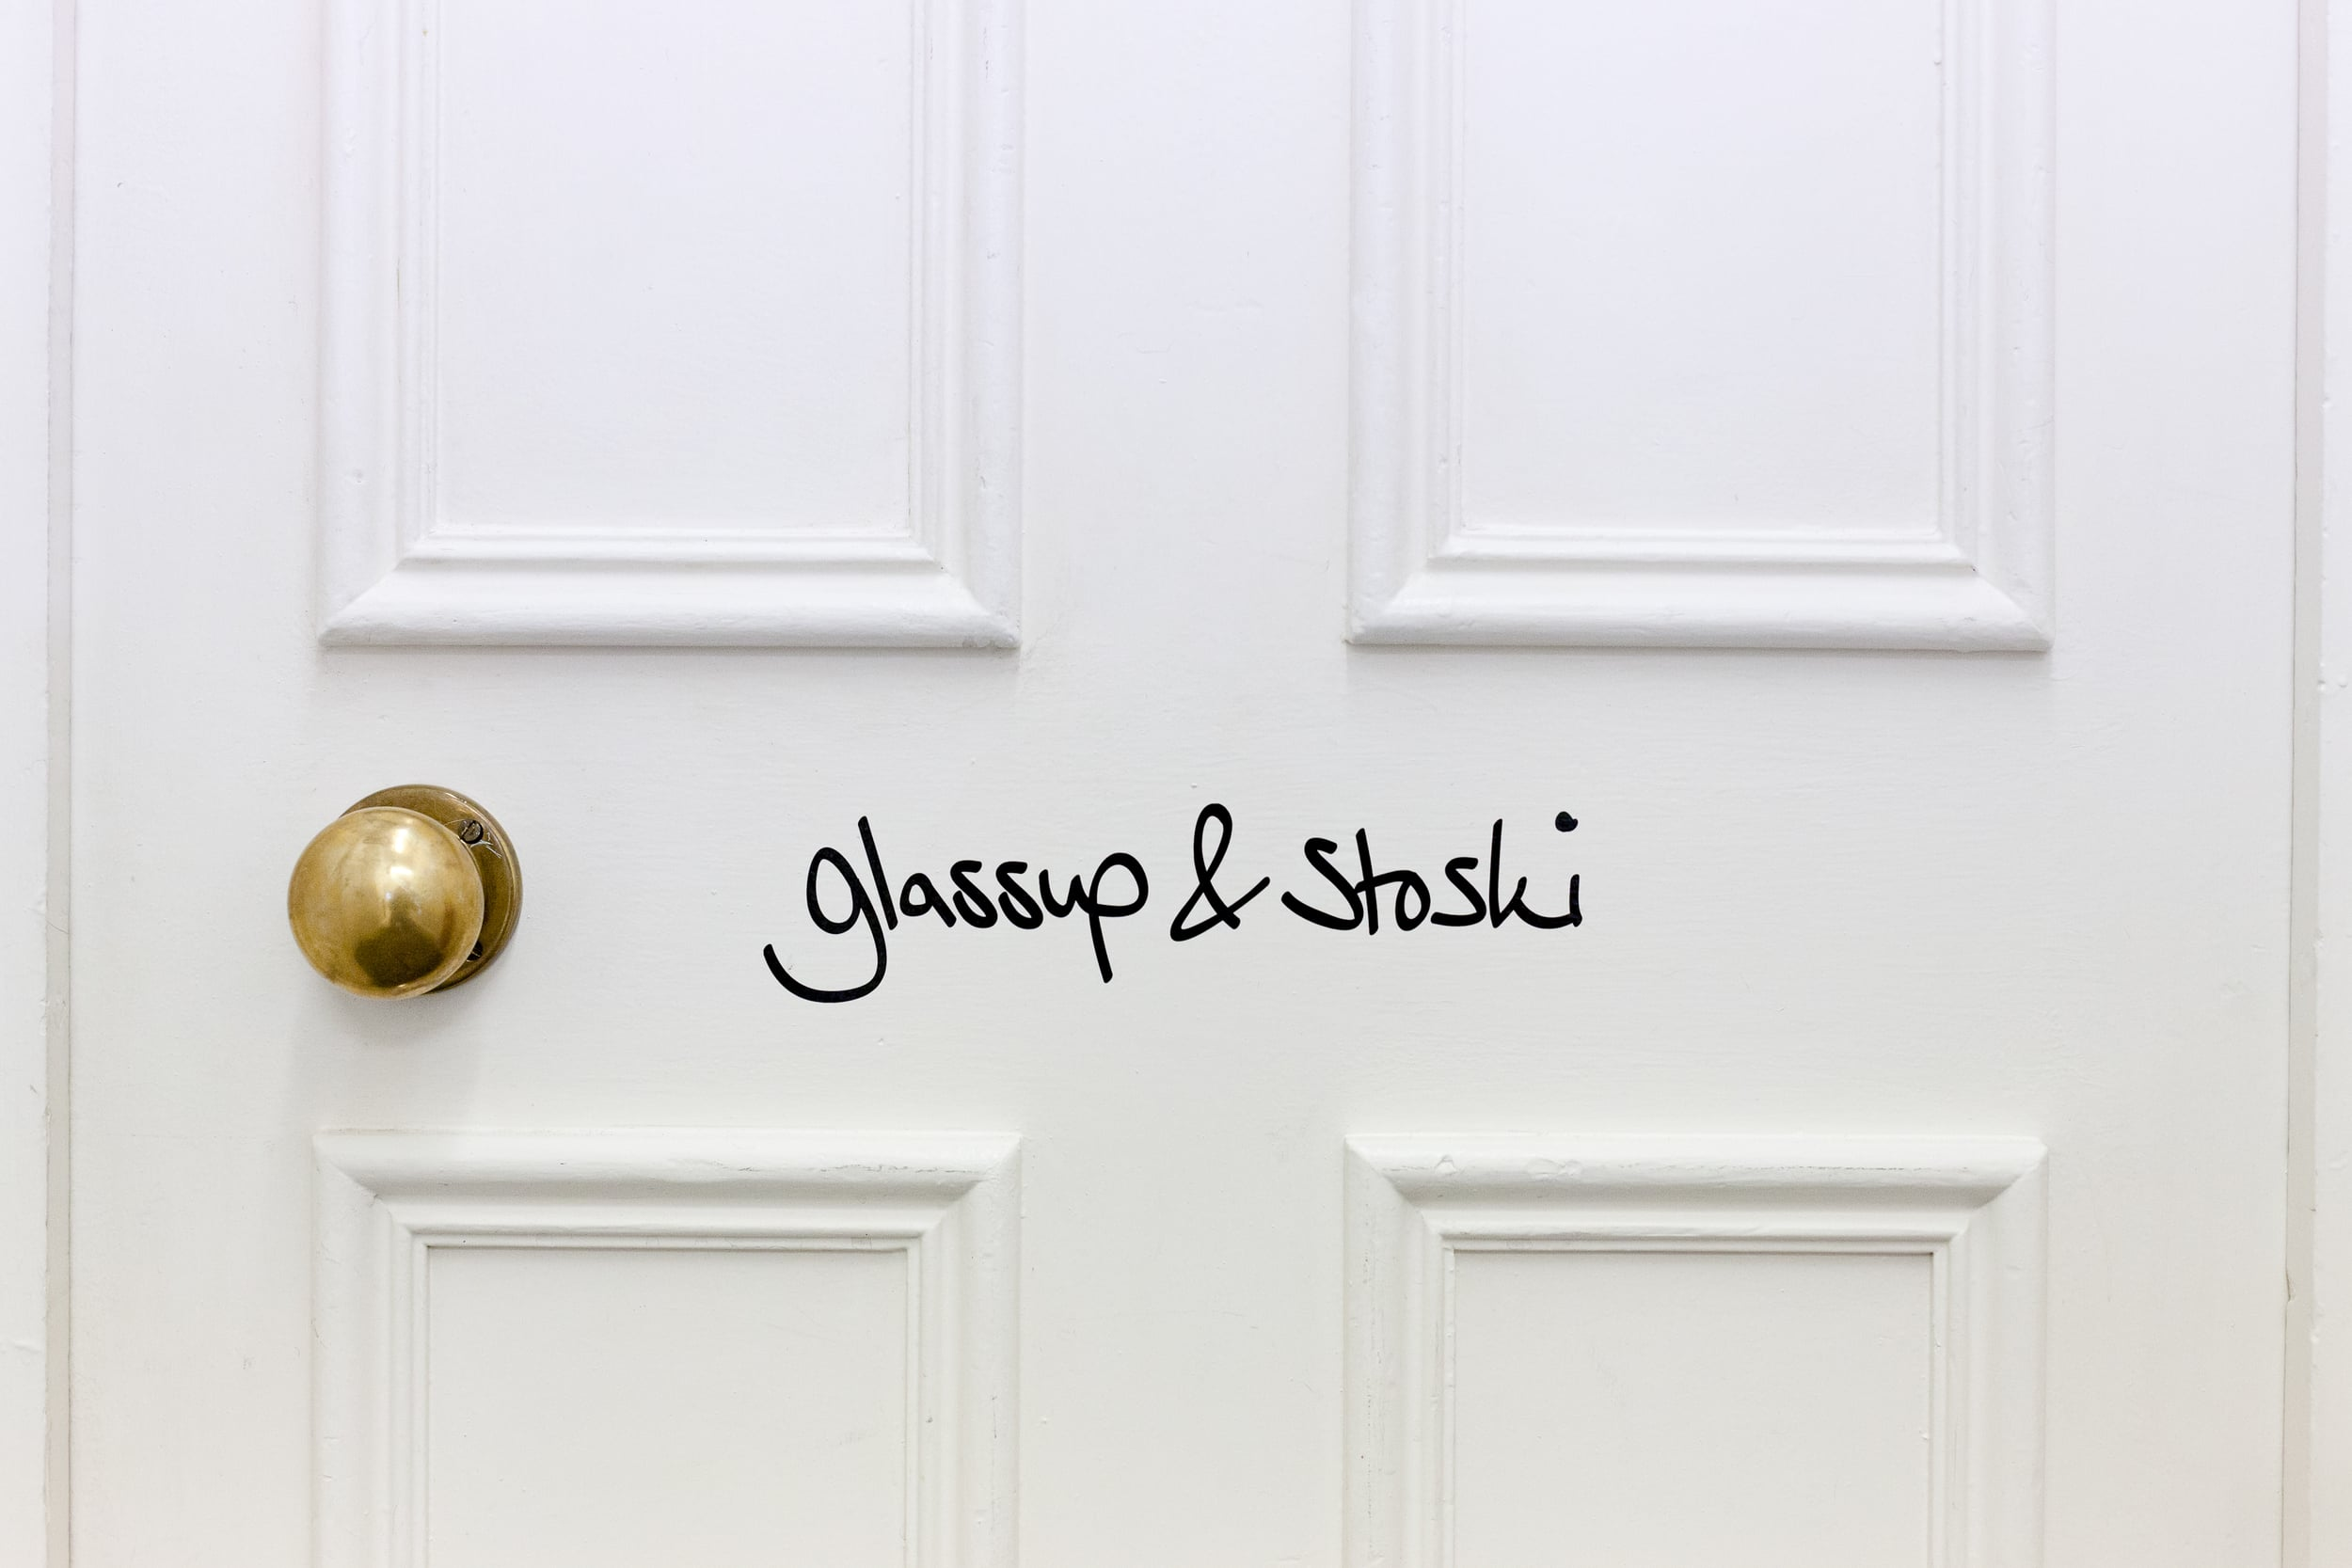 Glassup & Stoski White Door Sign.jpg